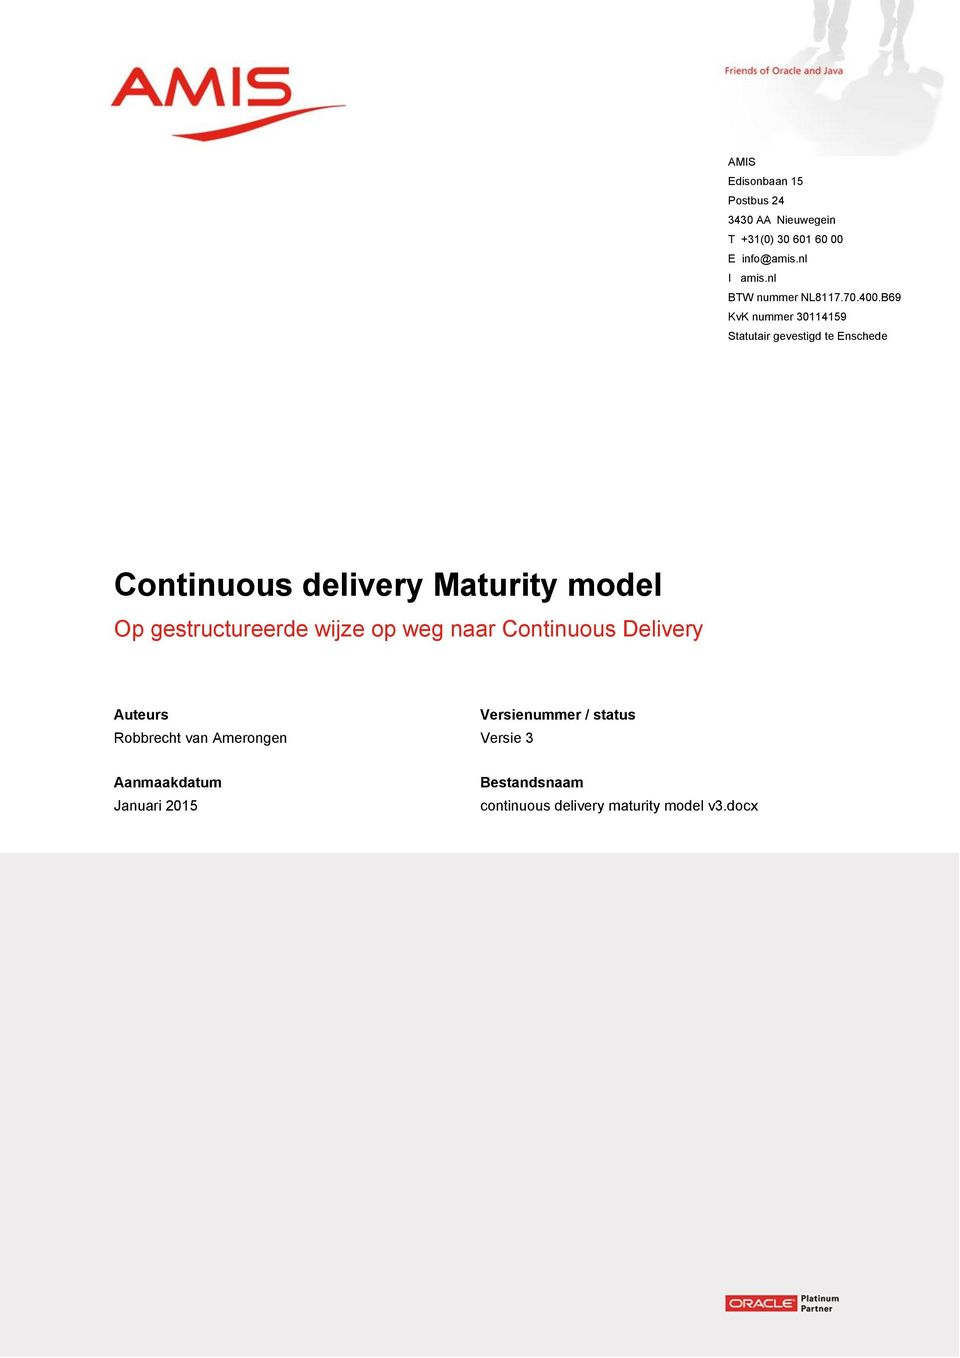 B69 KvK nummer 30114159 Statutair gevestigd te Enschede Continuous delivery Maturity model Op